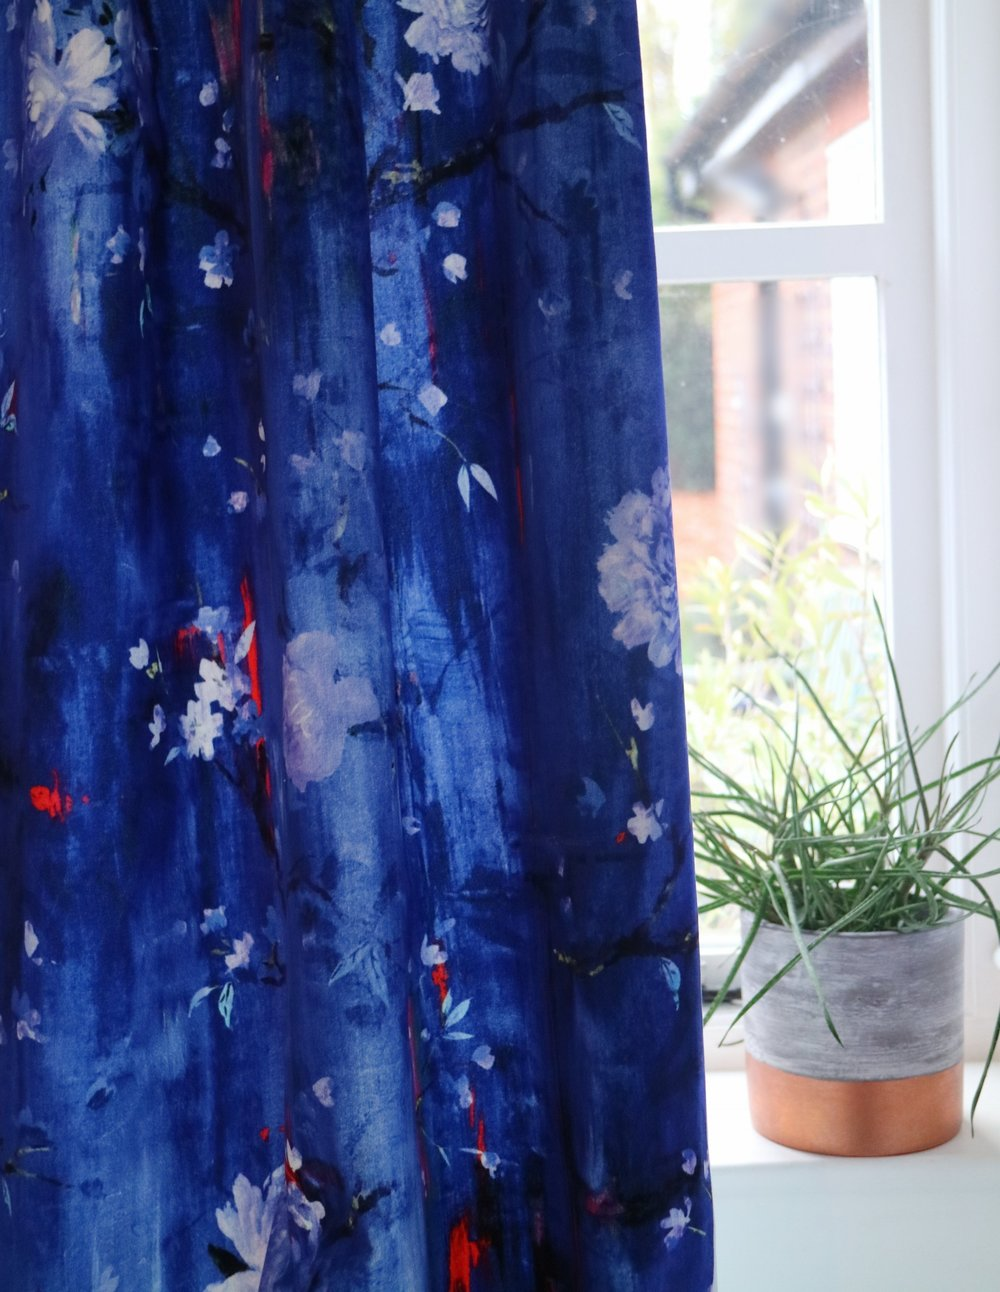 Curtains in 'Perfumes of the Night' - Floral Edition in Moroccan Blue